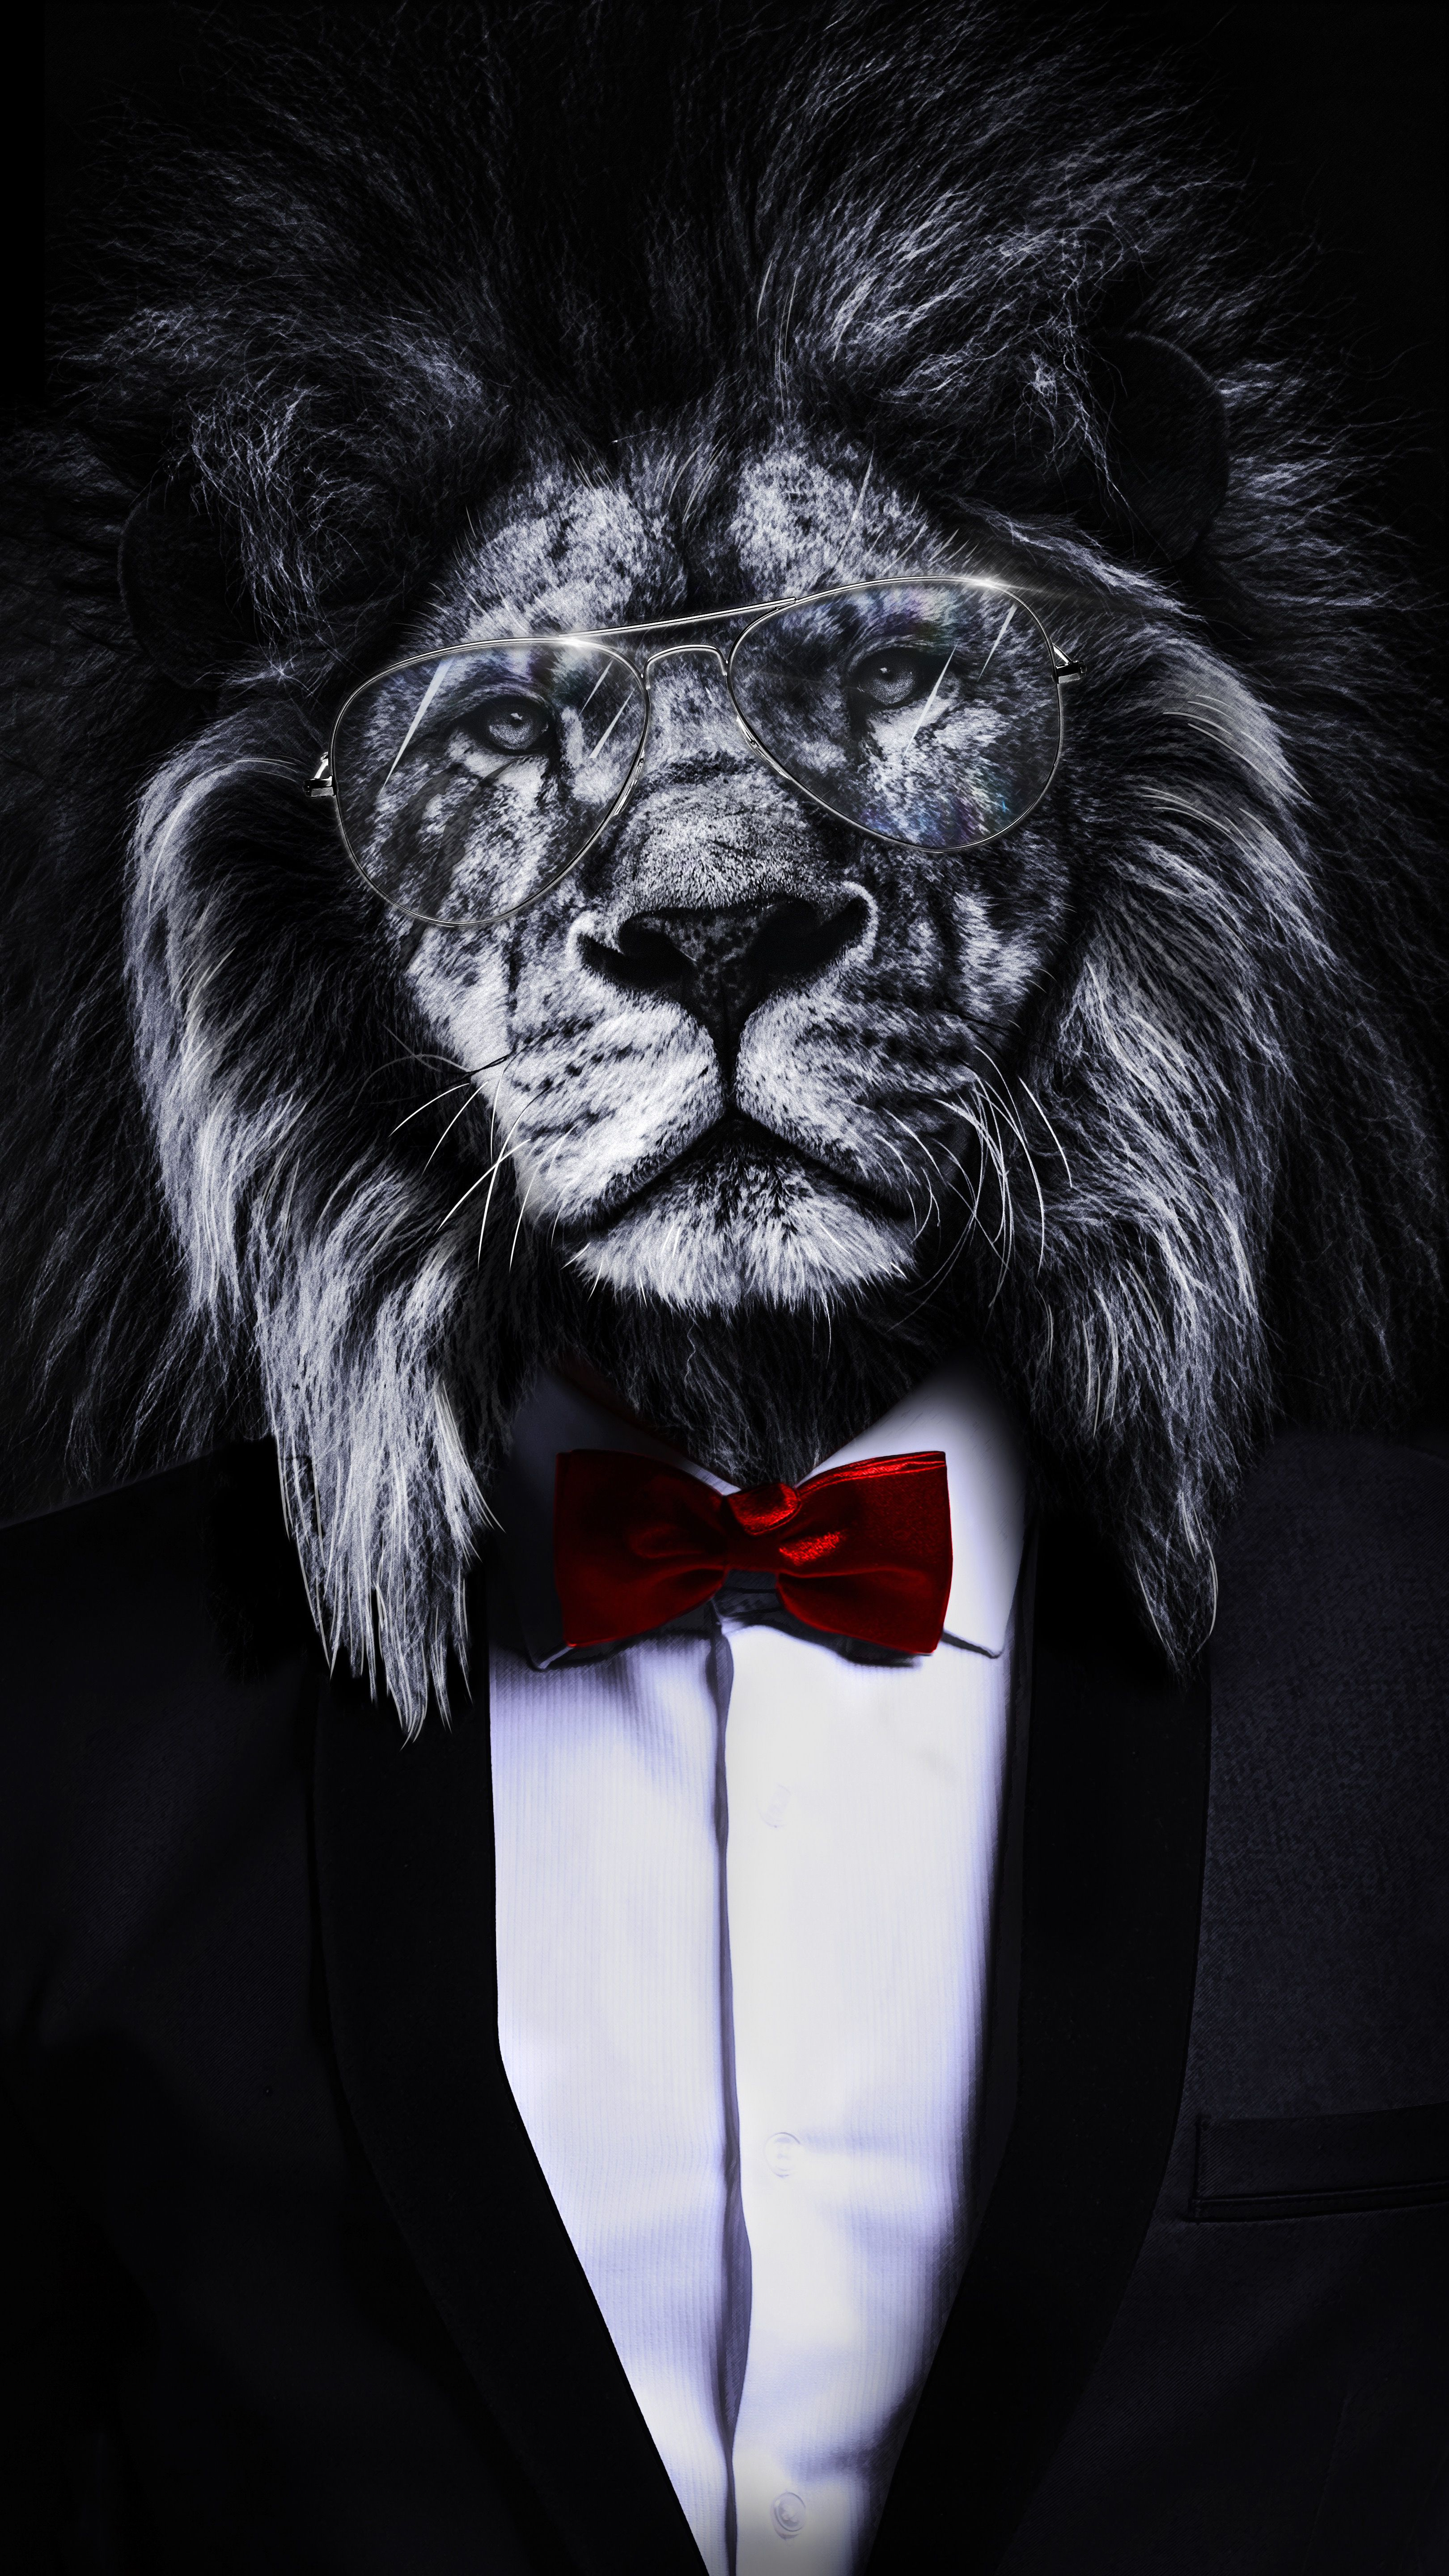 Pin By H H On Iphone 11 Pro Max Wallpaper Lion Pictures Lion Wallpaper Iphone Lion Wallpaper